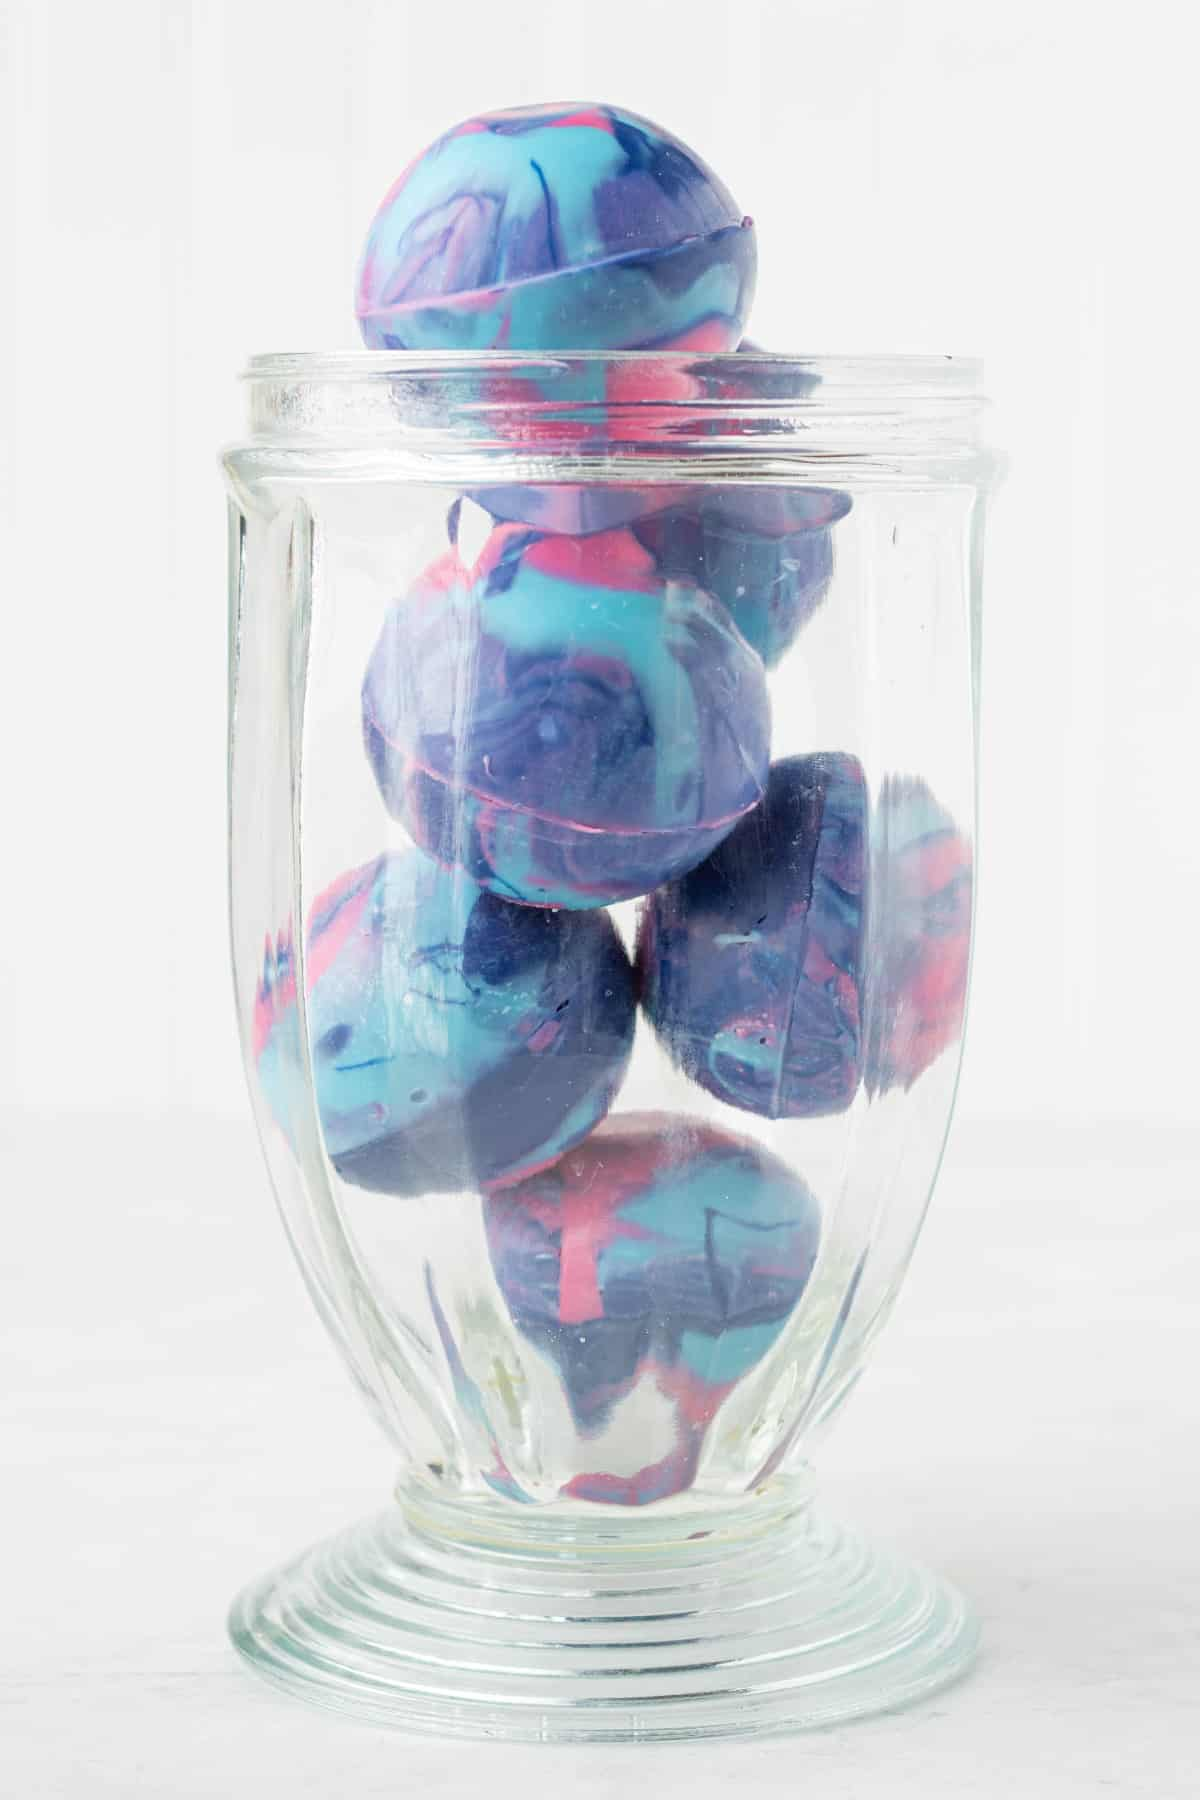 Galaxy Hot Chocolate Bombs in a tall glass container